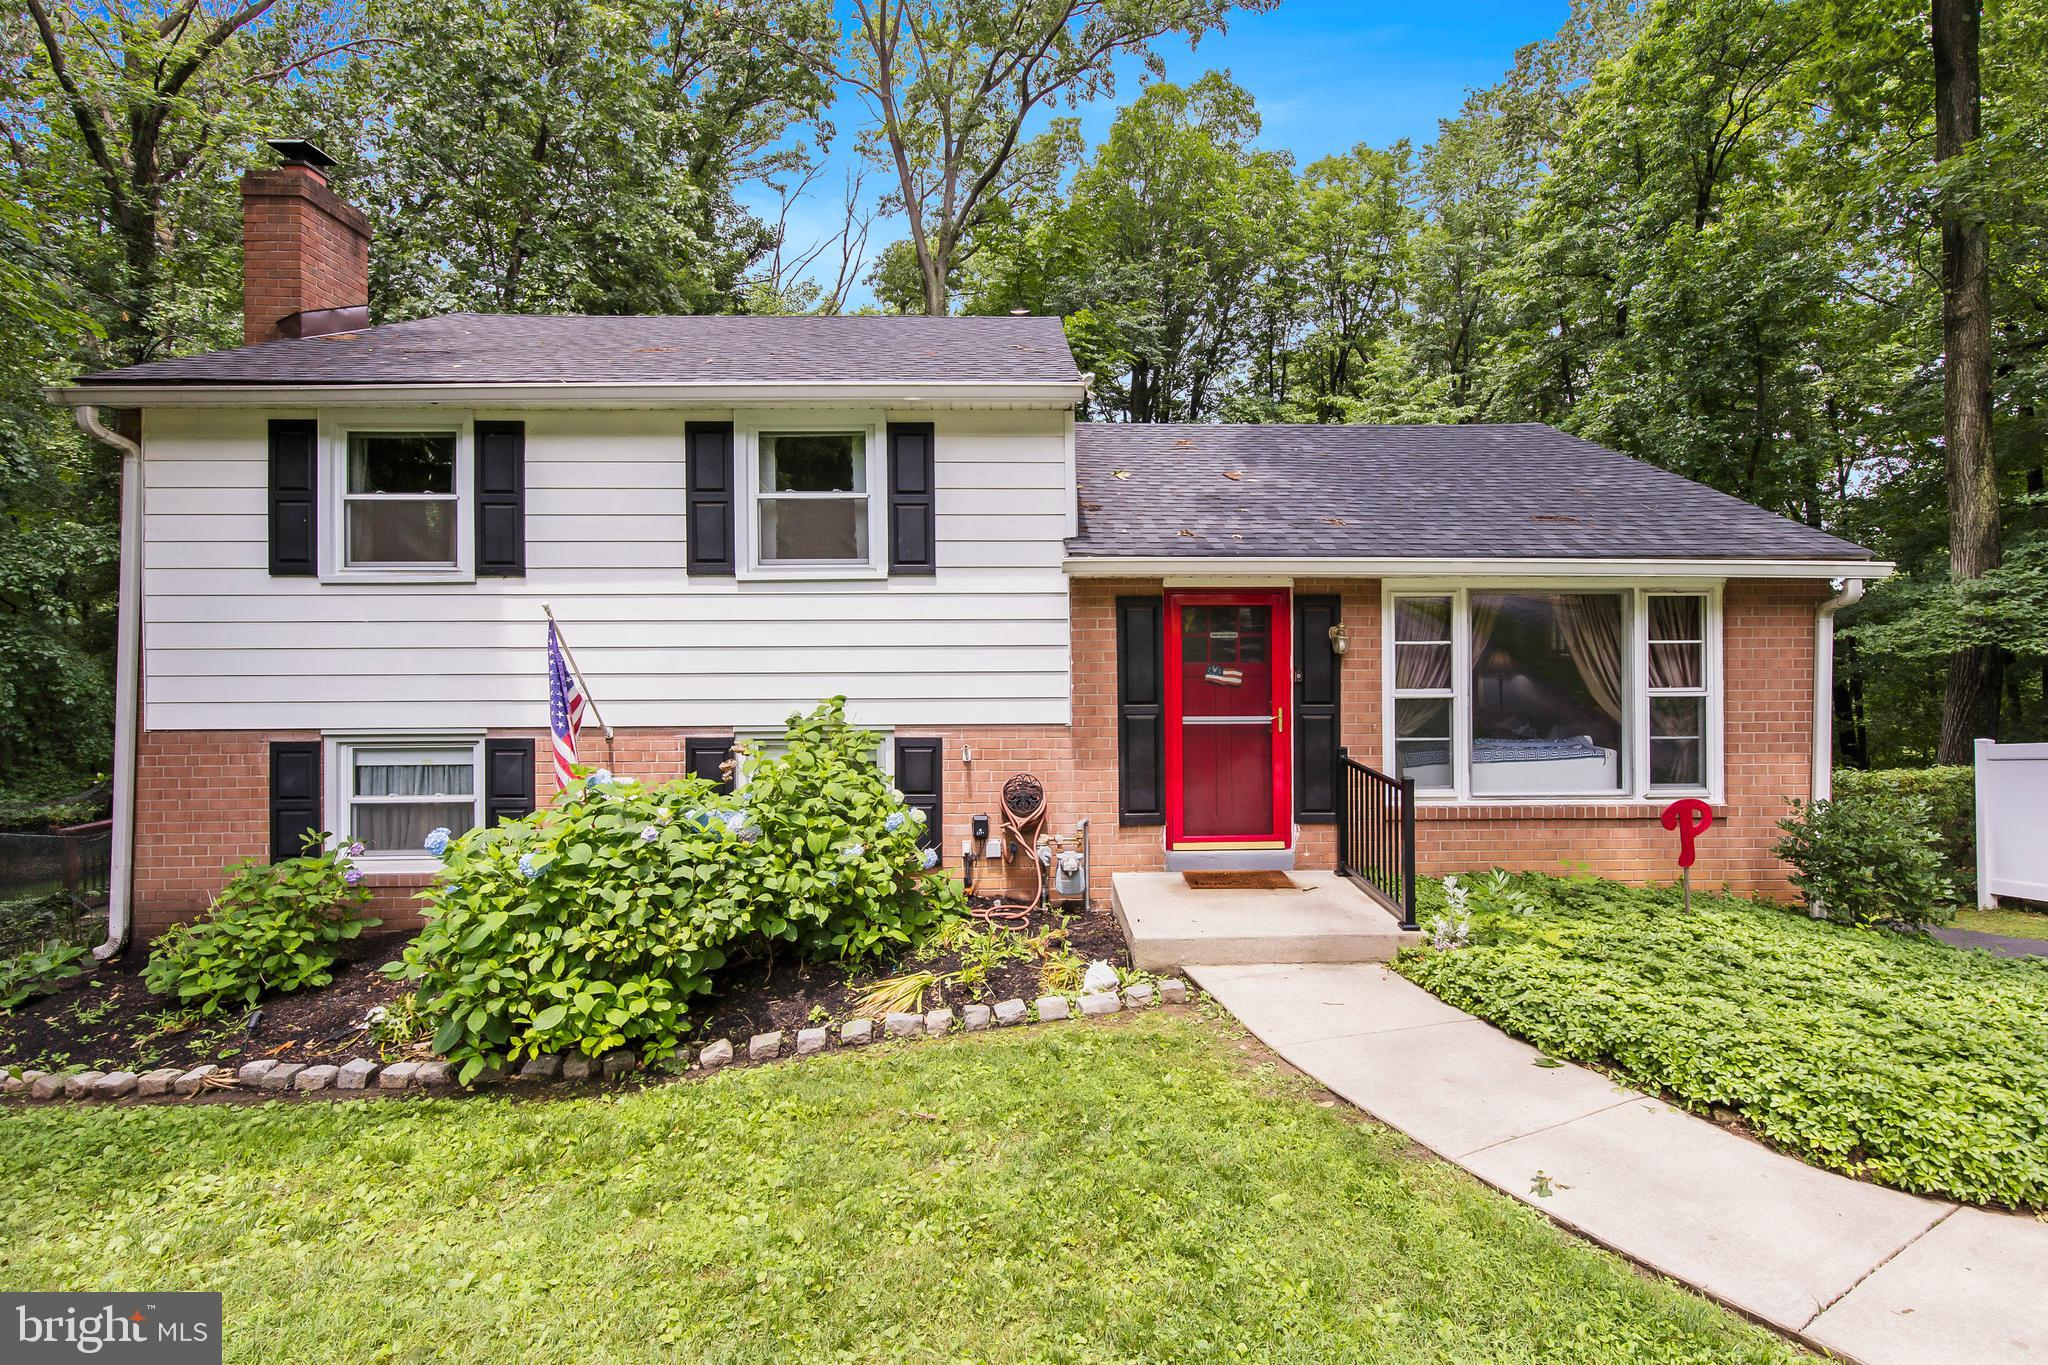 Meticulously maintained and spacious 3-bedroom, brick, split-level home with a large, private deck overlooking a beautiful wooded backyard.  Highly desirable Bob White Farm community in Upper Merion Township School District and close to the Bob White park. The updated kitchen opens to the dining area with a large breakfast bar.  The living room has a huge bay window looking out on greenery.  Three bedrooms with plenty of closet space. The upstairs bathrooms have been recently renovated.   The finished lower level offers additional space, a separate laundry room with additional storage, a ½ bath, and an exit leading to an outrageous deck with stunning views!. Two-car garage is oversized with extra ceiling height. This lovely home exudes pride of ownership and is lovingly well-maintained.